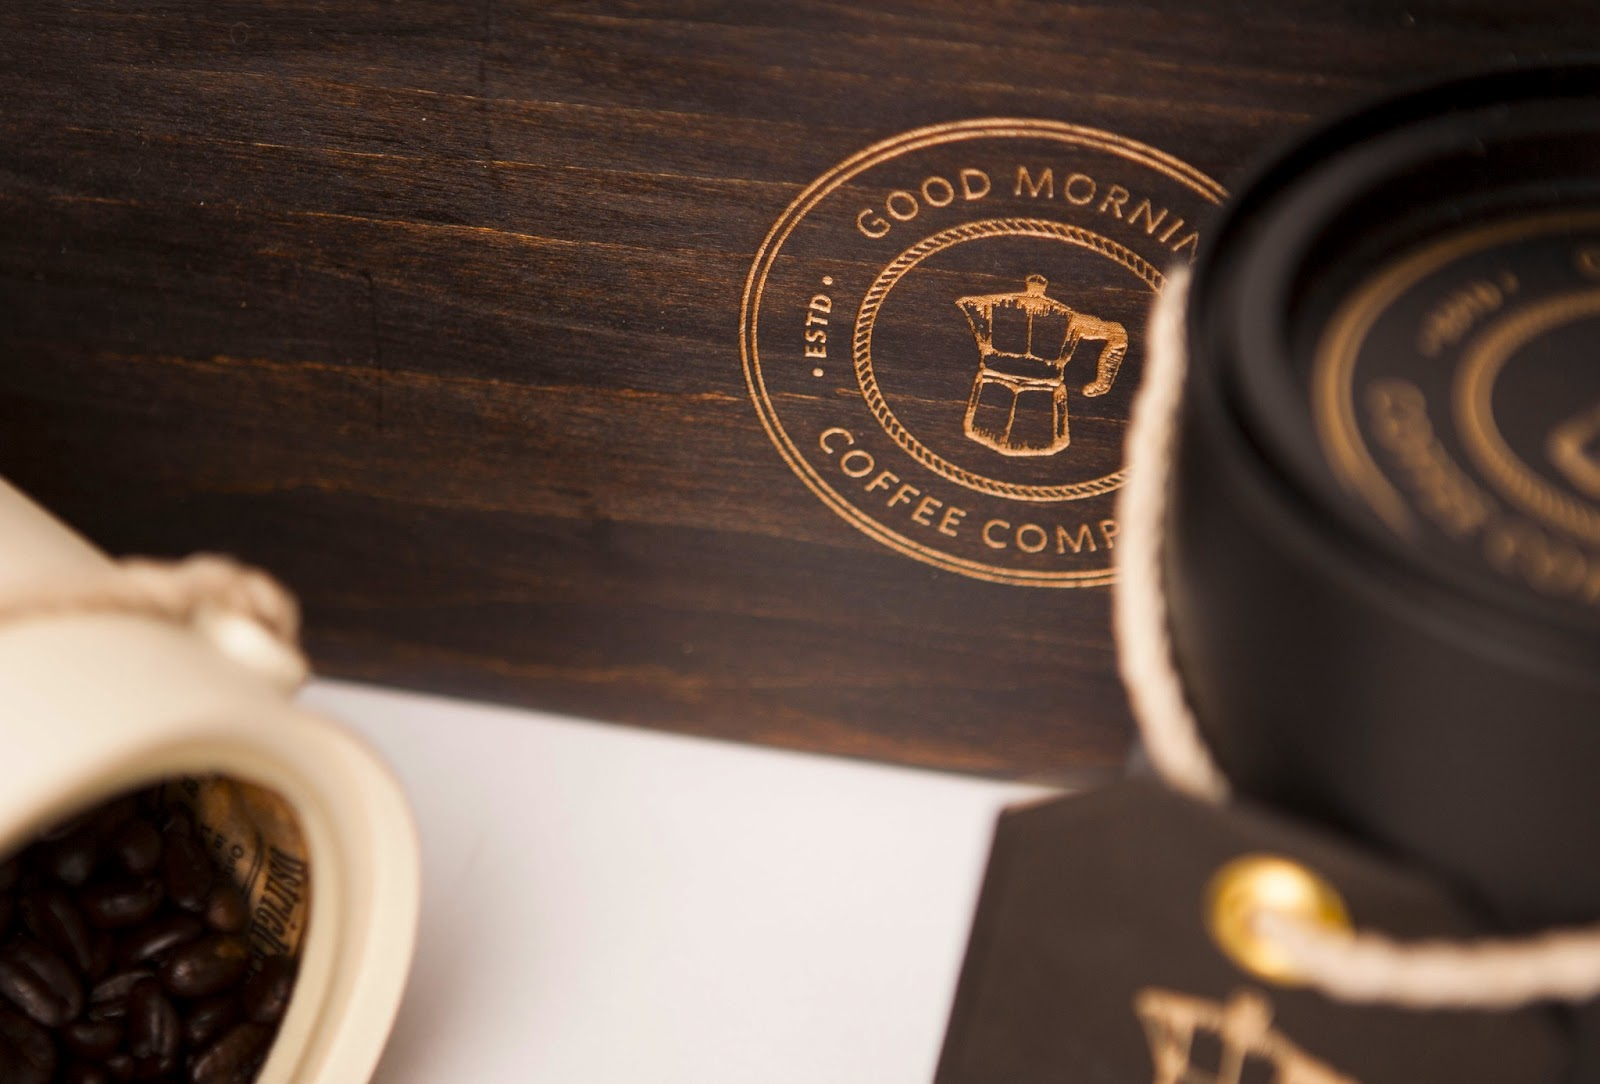 Good Morning Coffee Company Student Work On Packaging Of